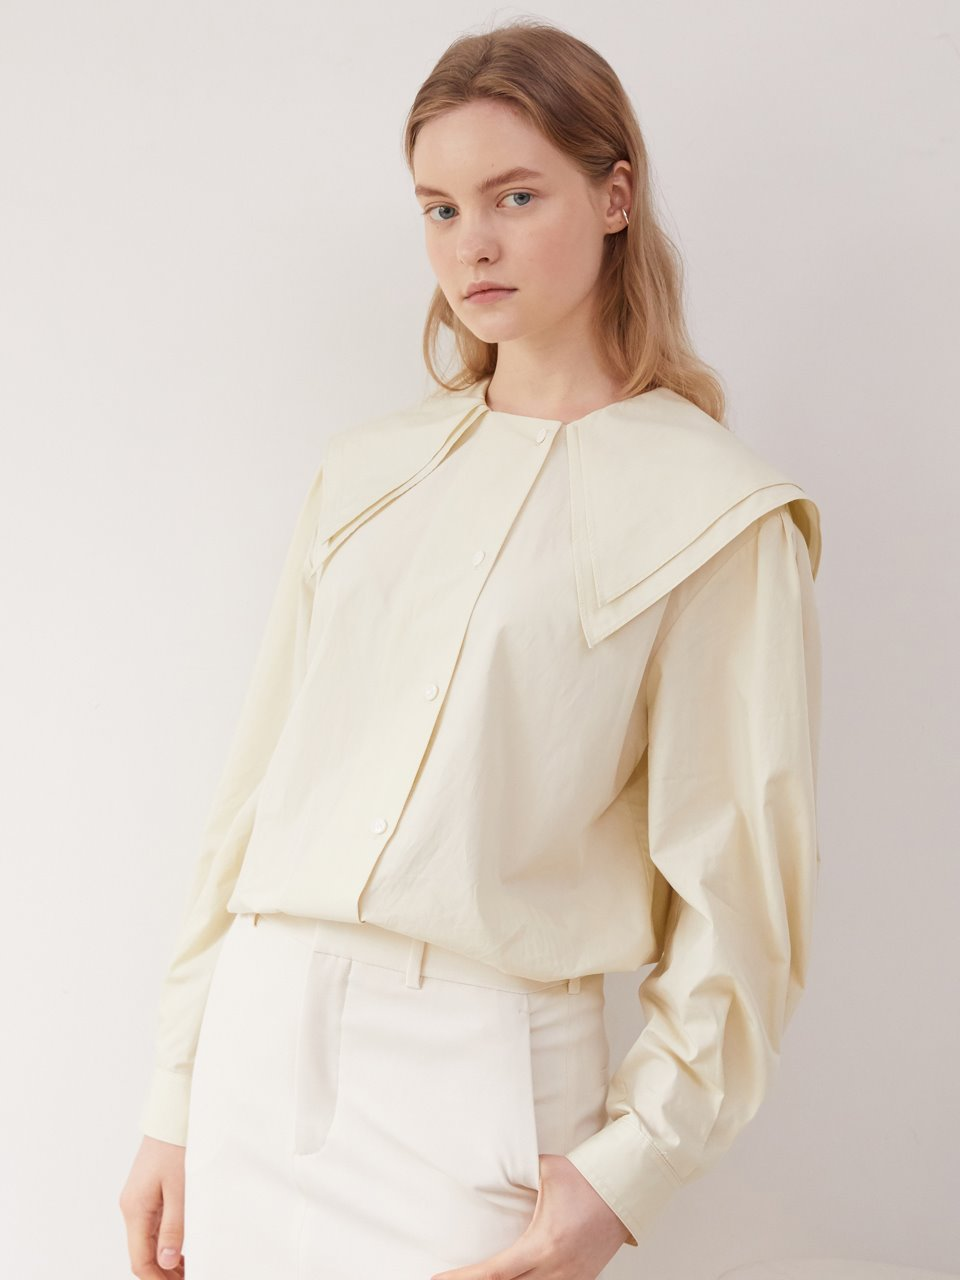 Double collar blouse - Honeydew